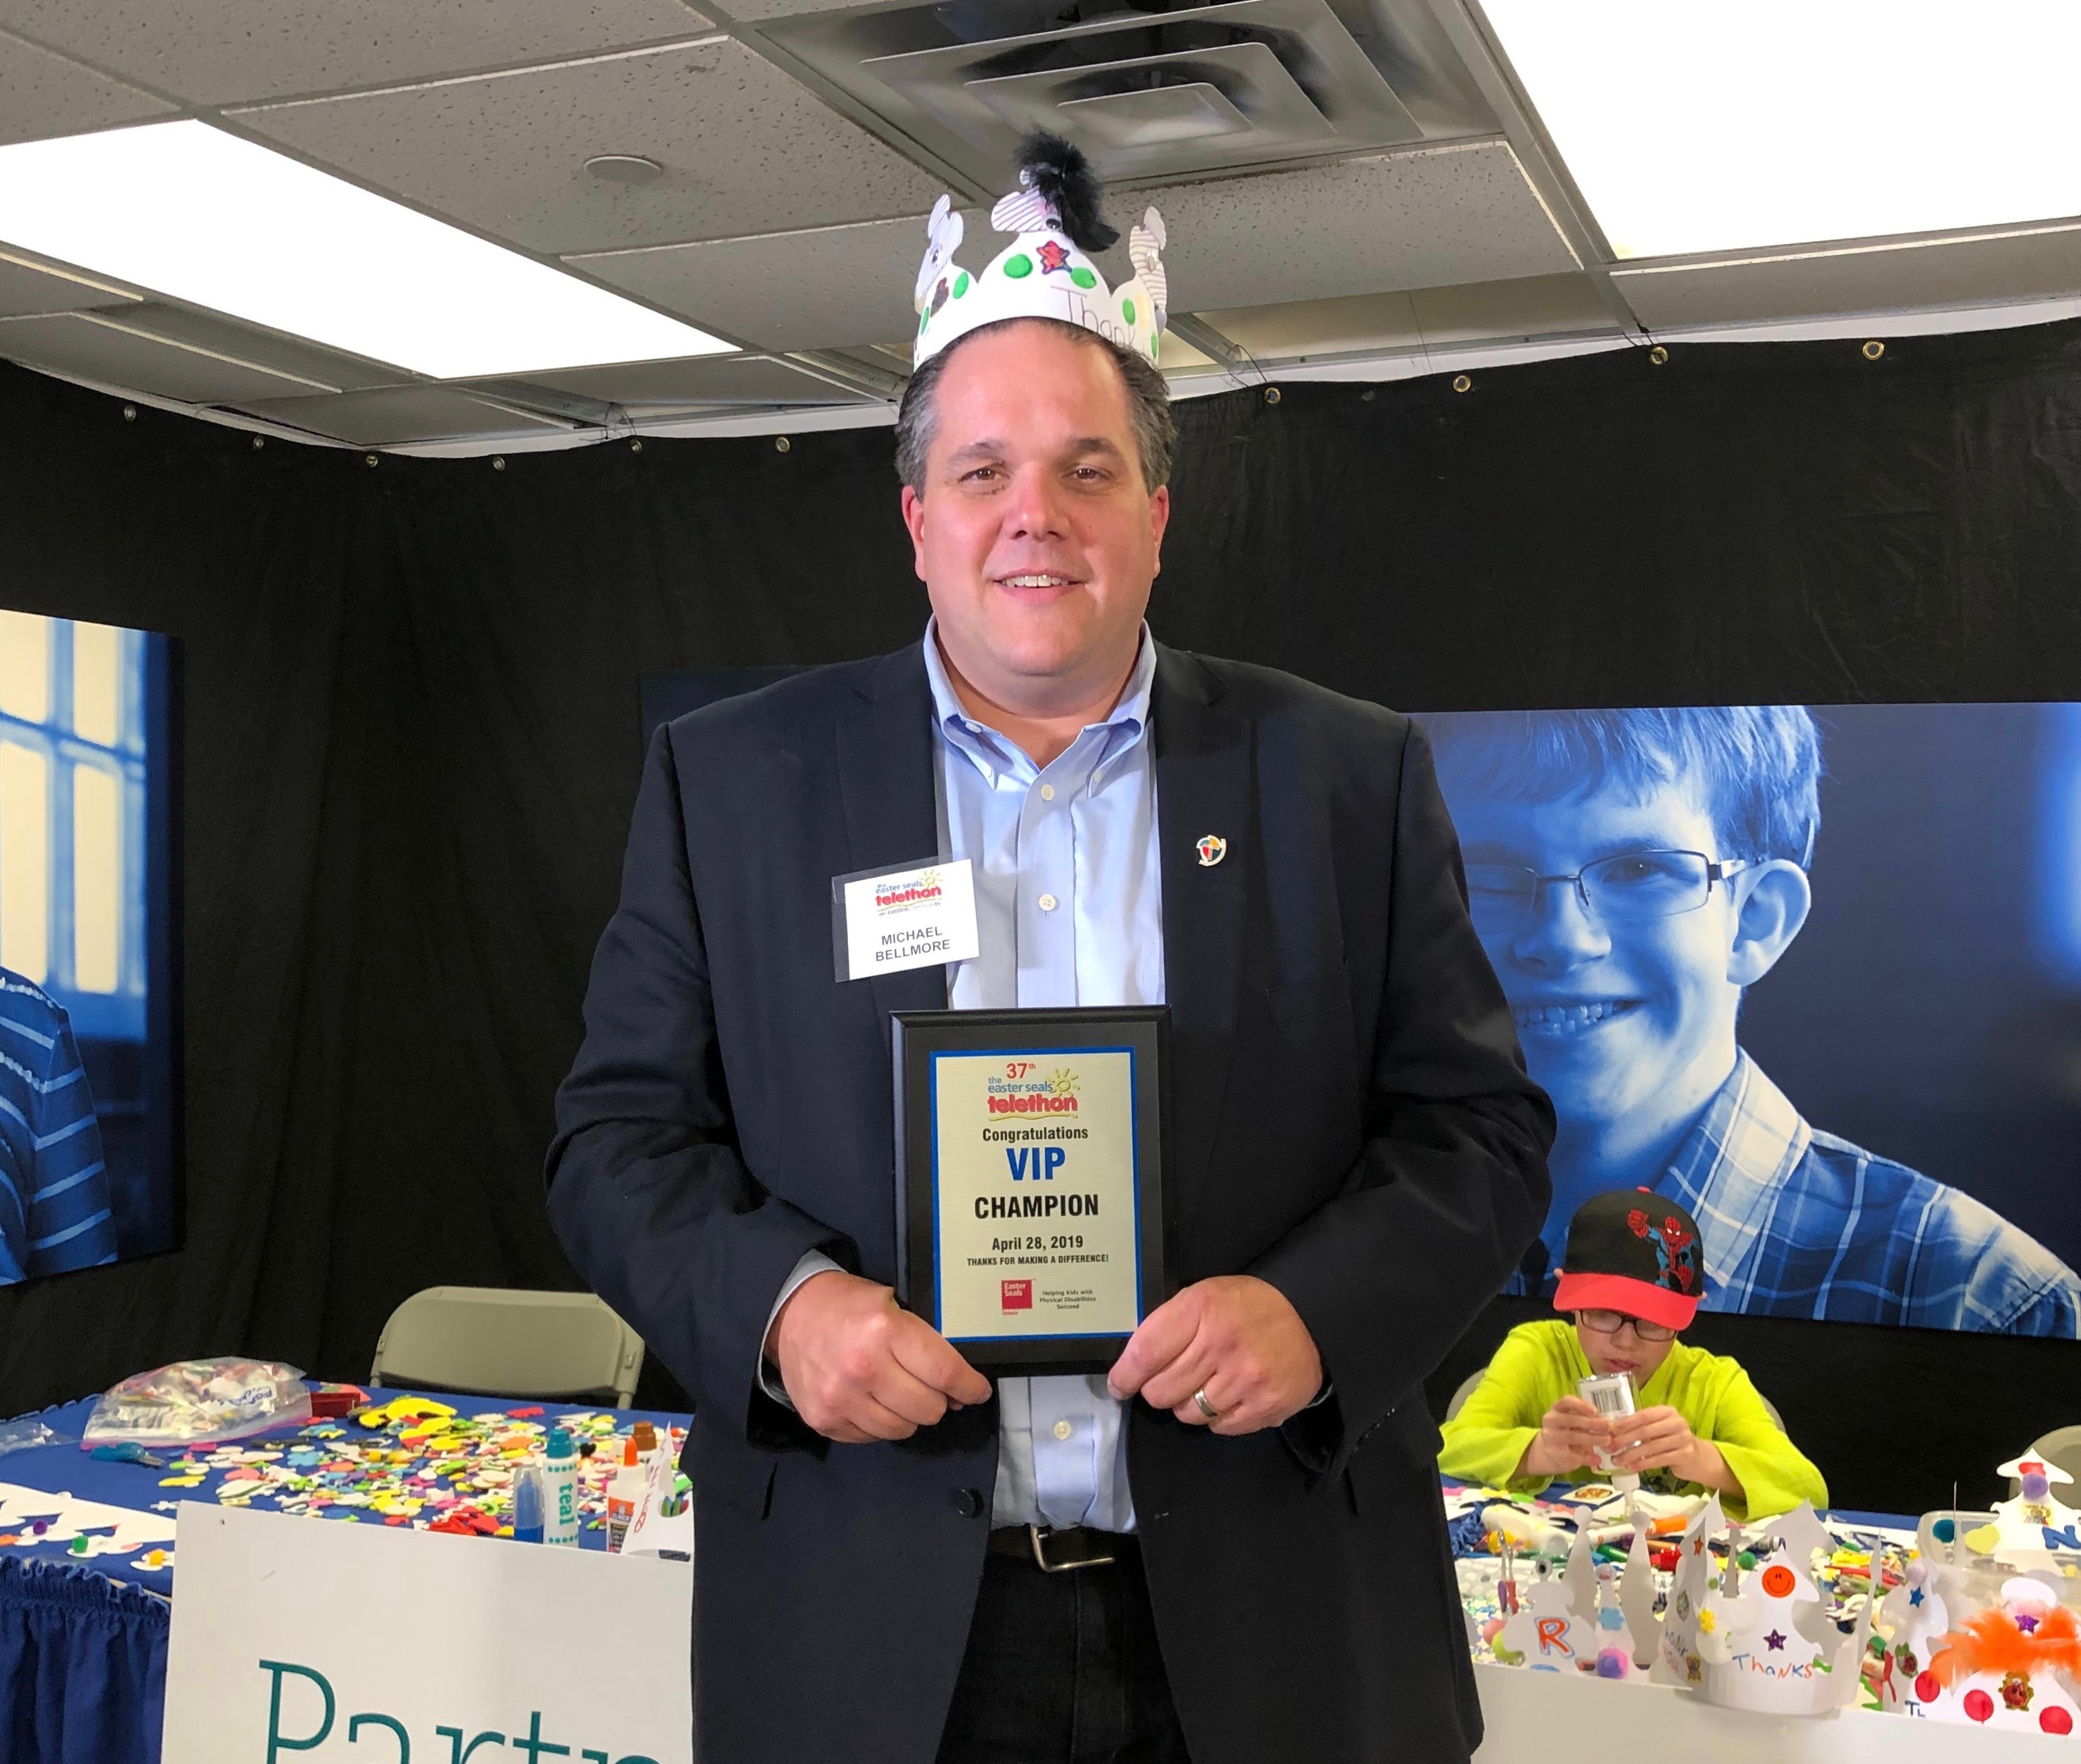 Board Chair Michael Bellmore stands with his VIP Champion Plaque